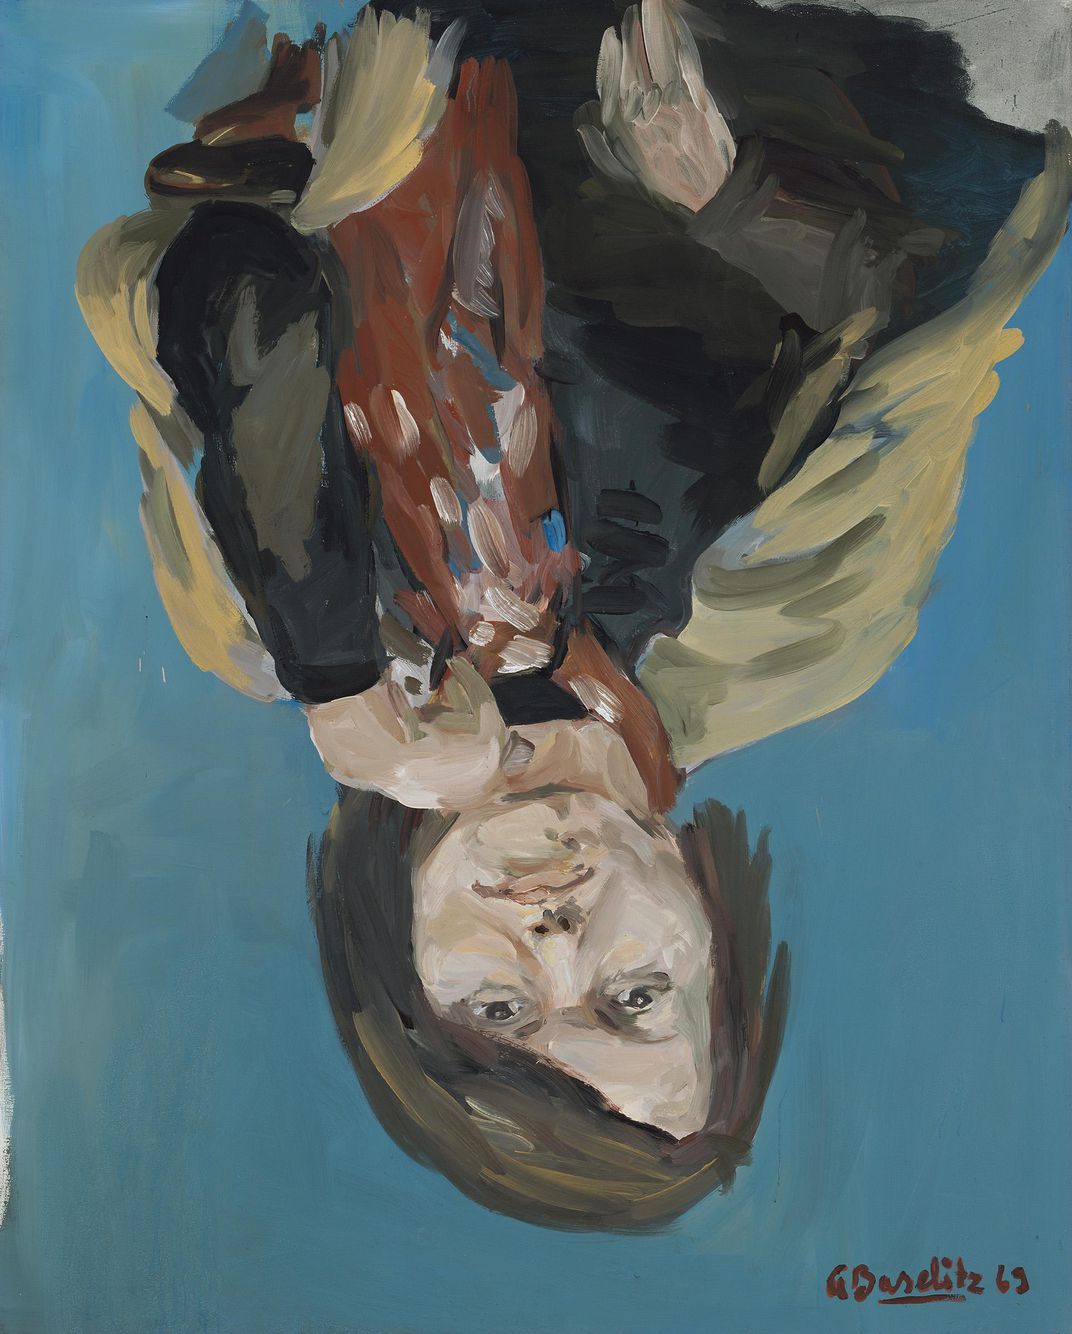 Georg Baselitz. Portrait of Elke I, 1969